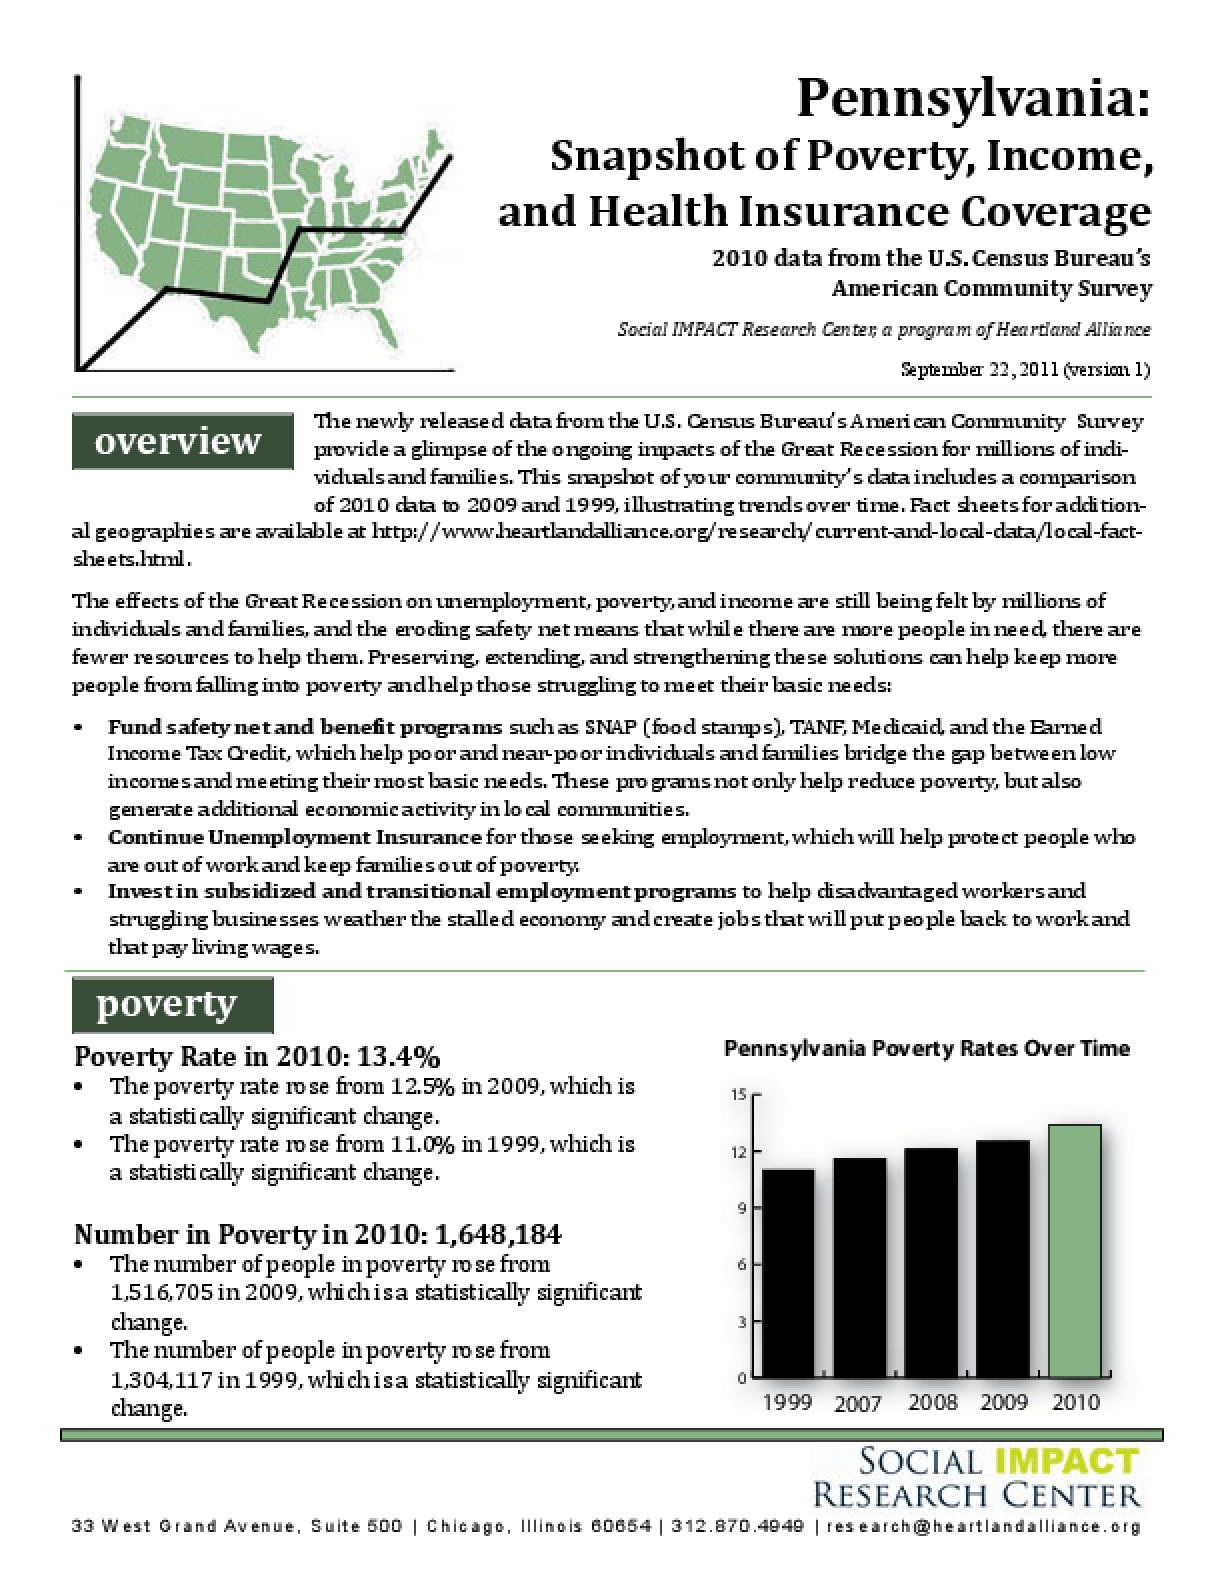 Pennsylvania: Snapshot of Poverty, Income, and Health Insurance Coverage